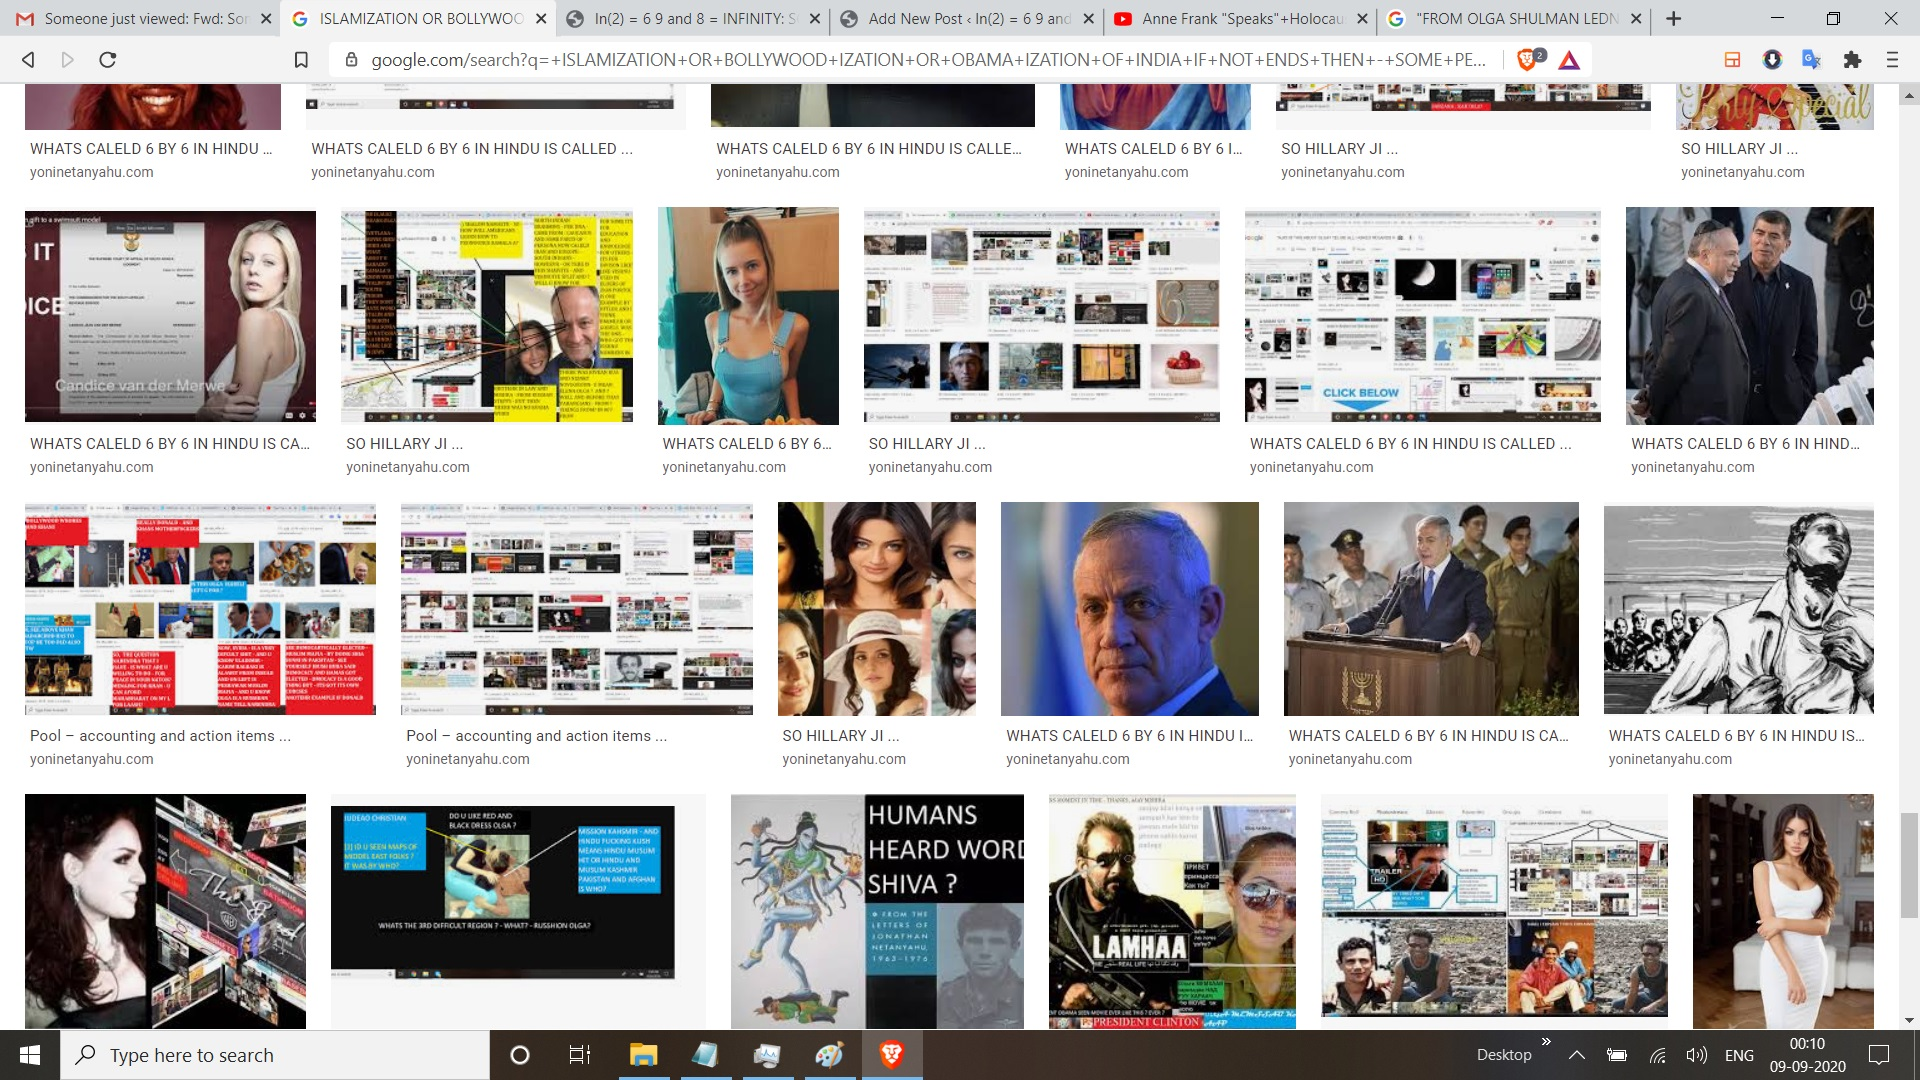 """Sep 8, 2020, 11:40 PM (30 minutes ago) to me   Someone just viewed: """"Fwd: Someone just viewed: ISLAMIZATION OR BOLLYWOOD IZATION OR OBAMA IZATION OF INDIA IF NOT ENDS THEN - SOME PEOPLE WILL MEANS WDETERMIISTACALLY DIE :Vogue (magazine) From Wikipedia, the free encyclopedia Jump to navigationJump to search For any other use, see Vogue (disambiguation). VOGUE VOGUE LOGO.svg David E Scherman- Lee Miller 1944.jpg Lee Miller in Uniform, 1944 Editor Anna Wintour Categories Fashion Frequency monthly Publisher Condé Nast Total circulation (2017) 1,242,282[1] Year founded December 17, 1892; 126 years ago Country United States Website www.vogue.com ISSN 0042-8000 Vogue is a fashion and lifestyle magazine covering many topics including fashion, beauty, culture, living, and runway. Vogue began as a weekly newspaper in 1892 in the United States, before becoming a mo nthly publication years later. The British Vogue was the first international edition launched in 1916, while the Italian version has been called the top fashion magazine in the world.[2] As of today, t"""" People on thread: Yoni Netanyahu Olga Blog Post By Email Device: iPhone Location: Quincy, WA © 2011-2020 Streak 2261 Market Street #4067 San Francisco, CA 94114   Get link"""